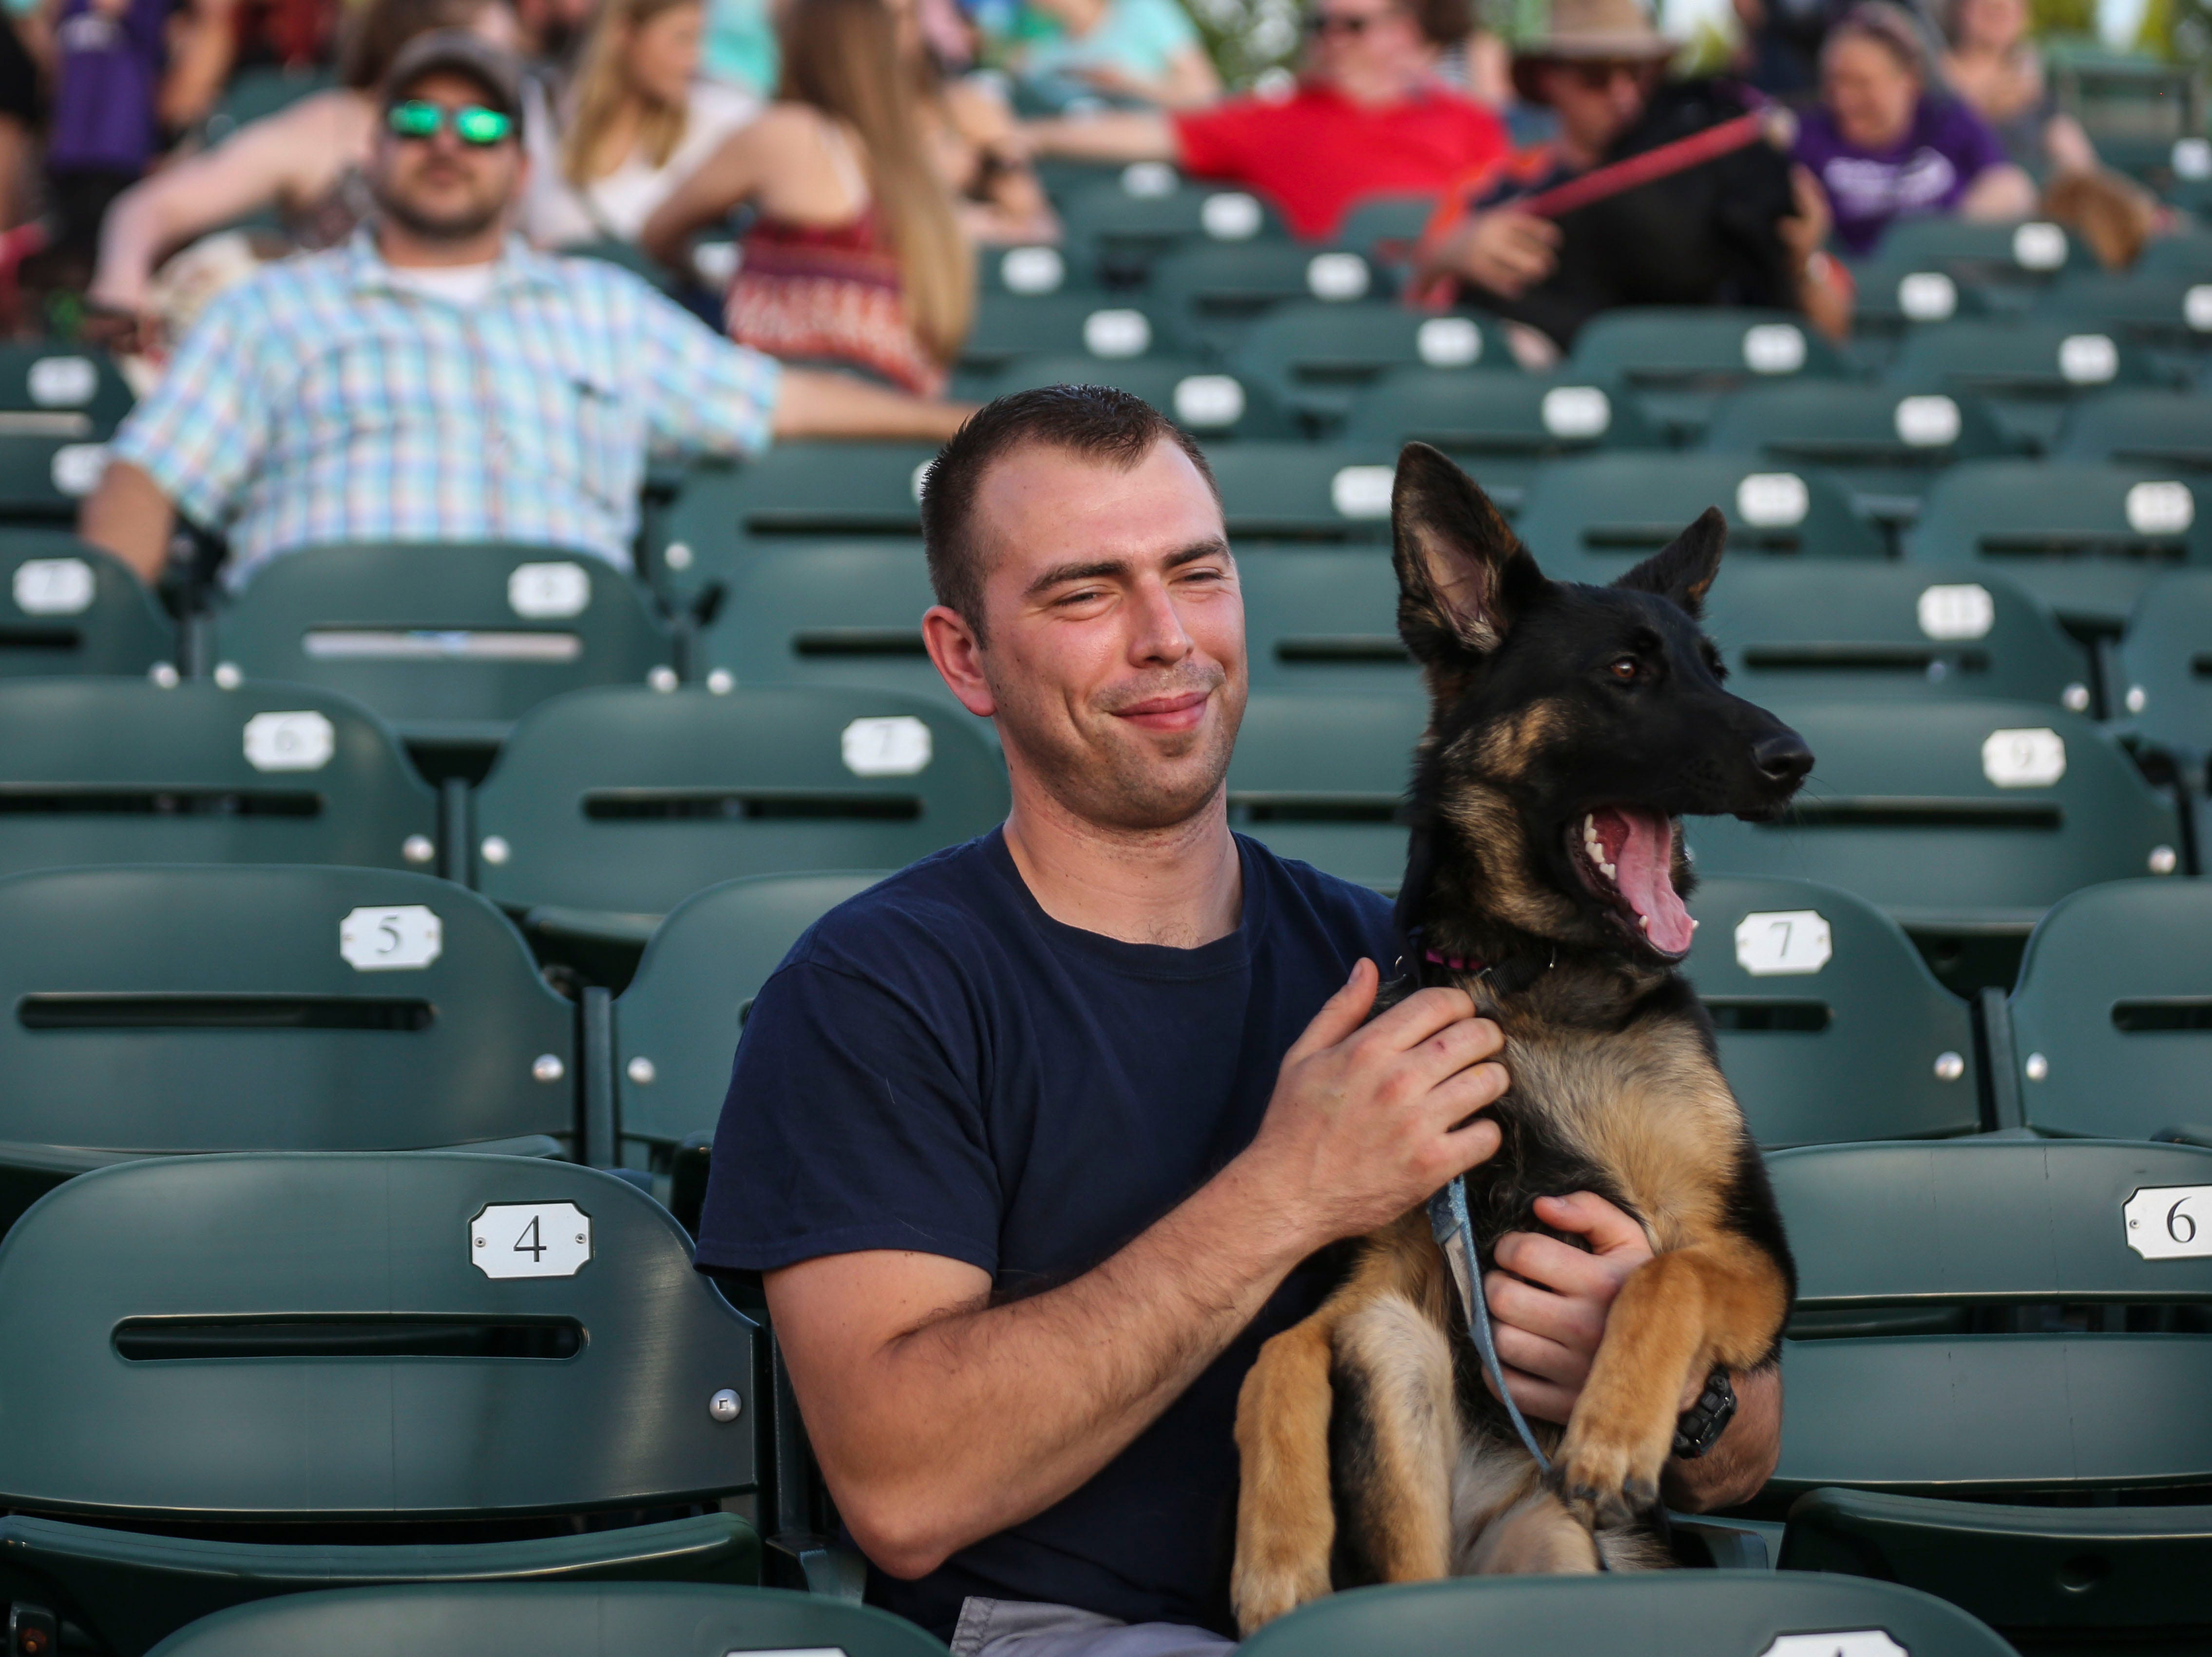 Lance Beckner sits with his German Shepard Kyra during the Louisville Bats v. Syracuse Mets game during Dog Day Nights at Louisville Slugger Field in downtown Louisville, Ky. on Tuesday, May 7, 2019.